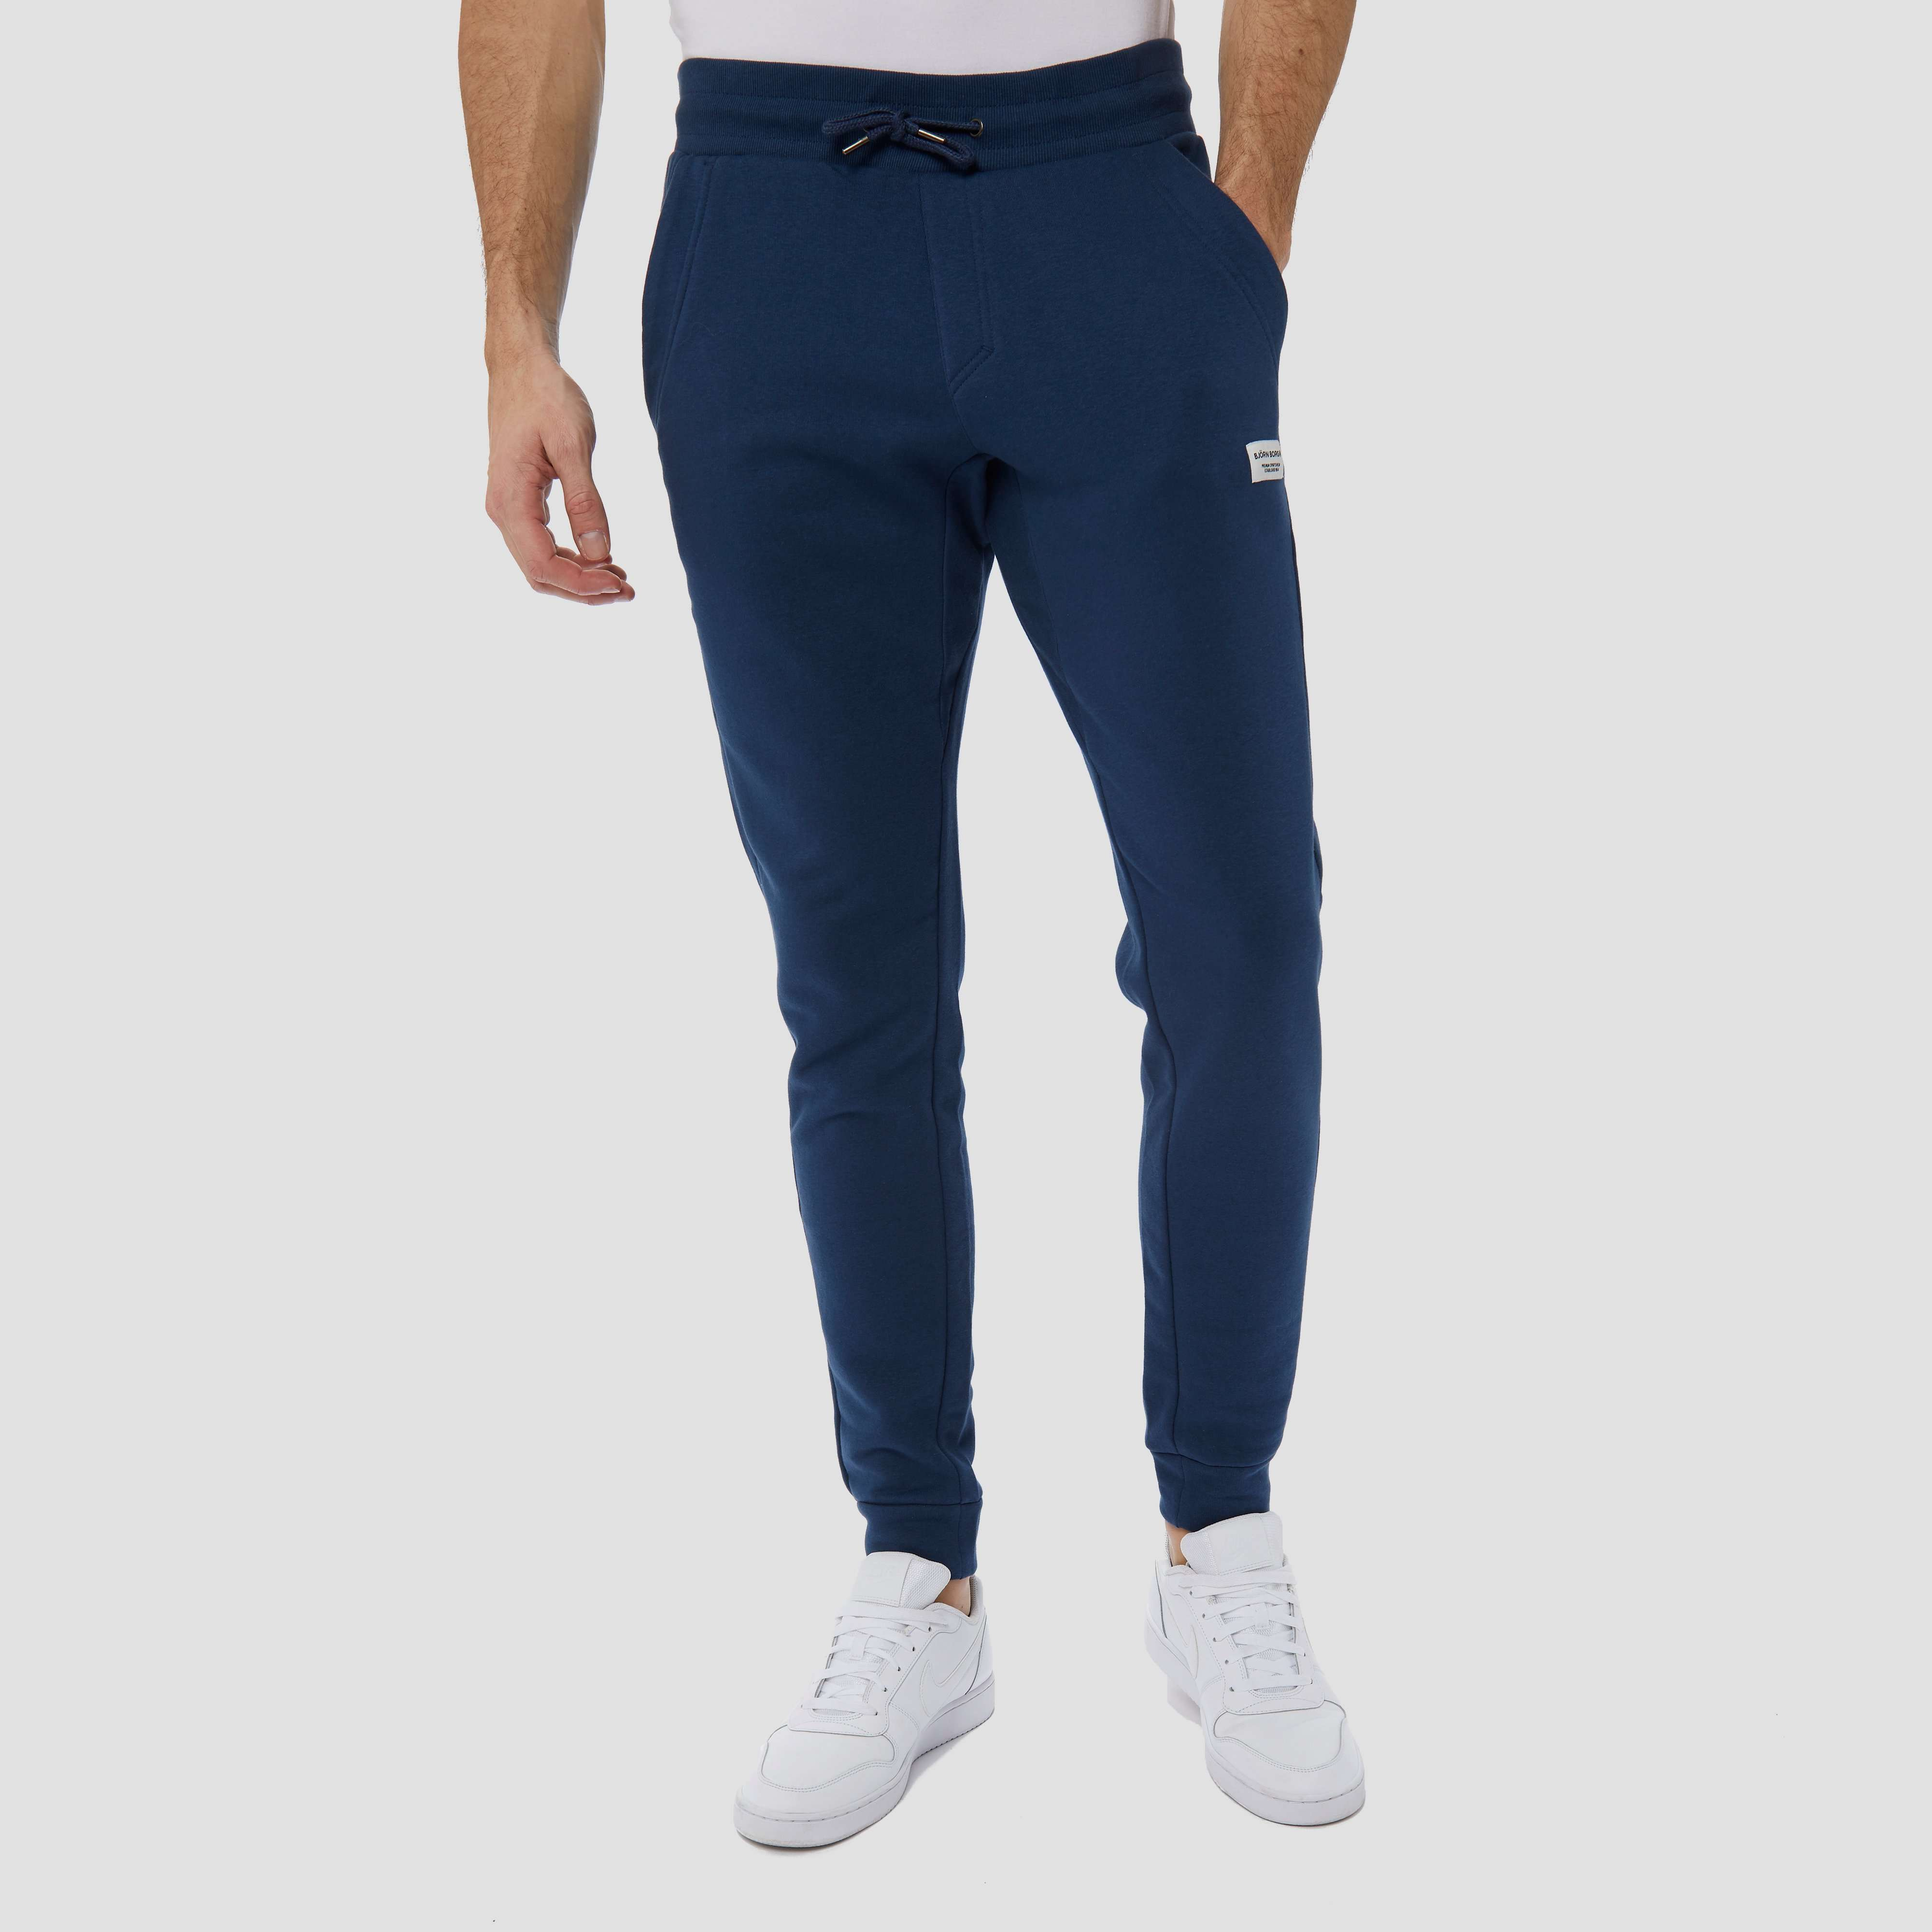 BJORN BORG CENTRE JOGGINGBROEK BLAUW HEREN